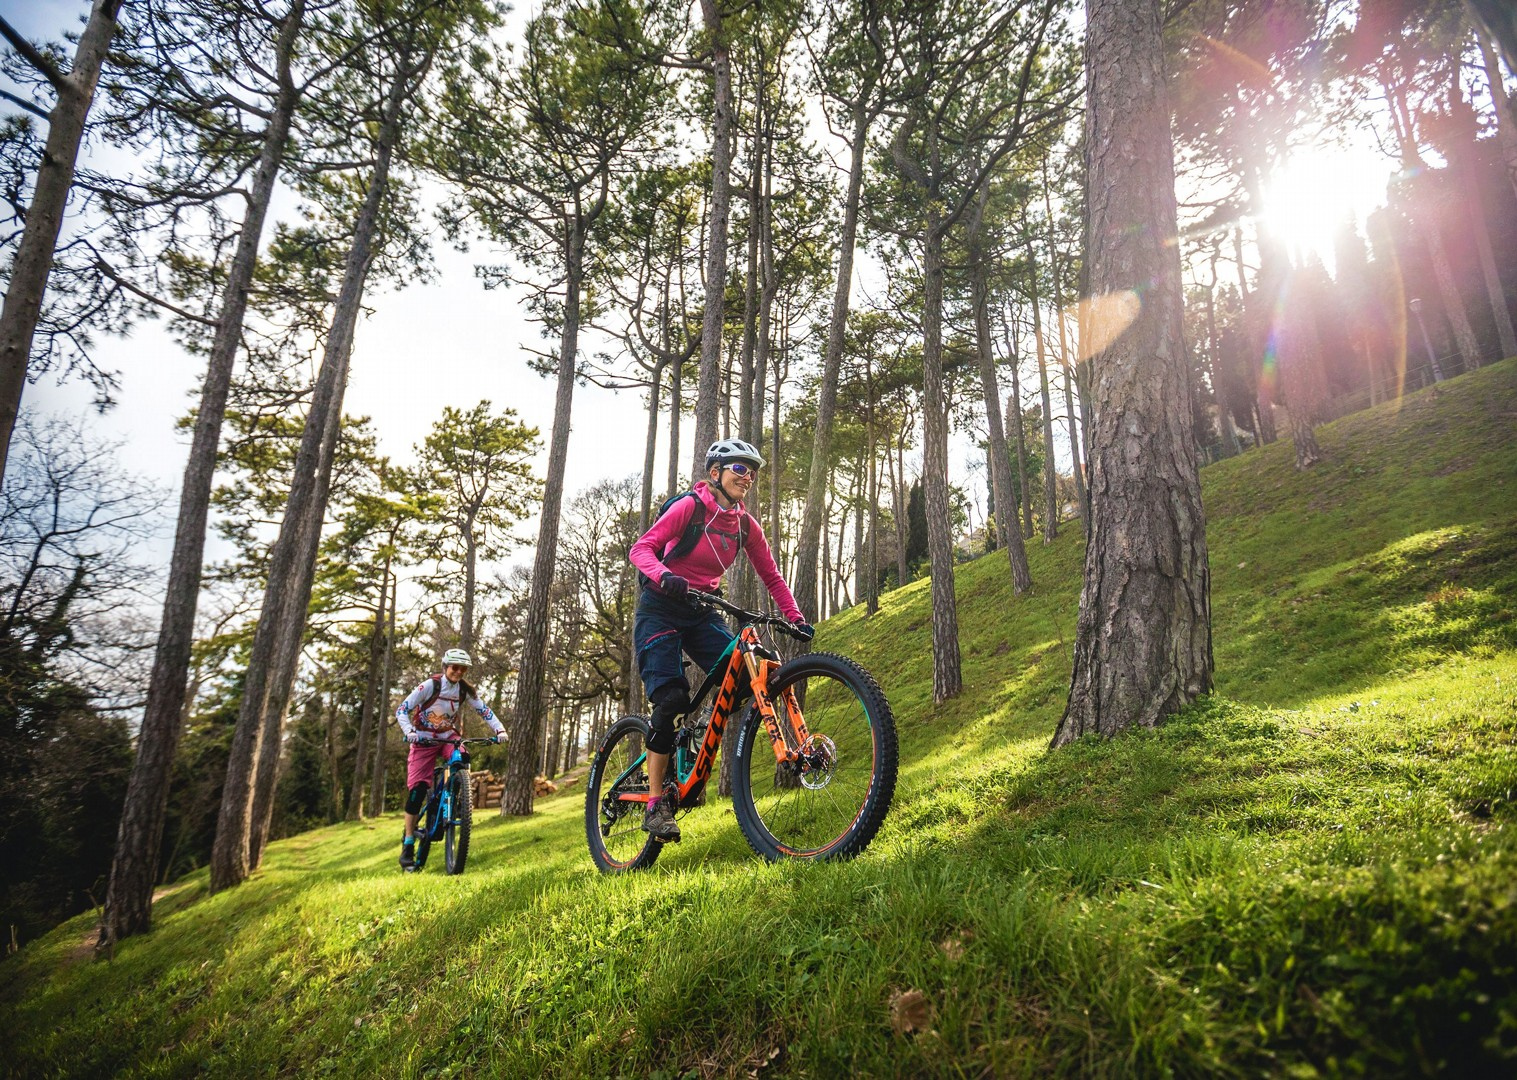 guided-mountain-biking-holiday-croatia-terra-magica.jpg - Croatia - Terra Magica - Mountain Biking